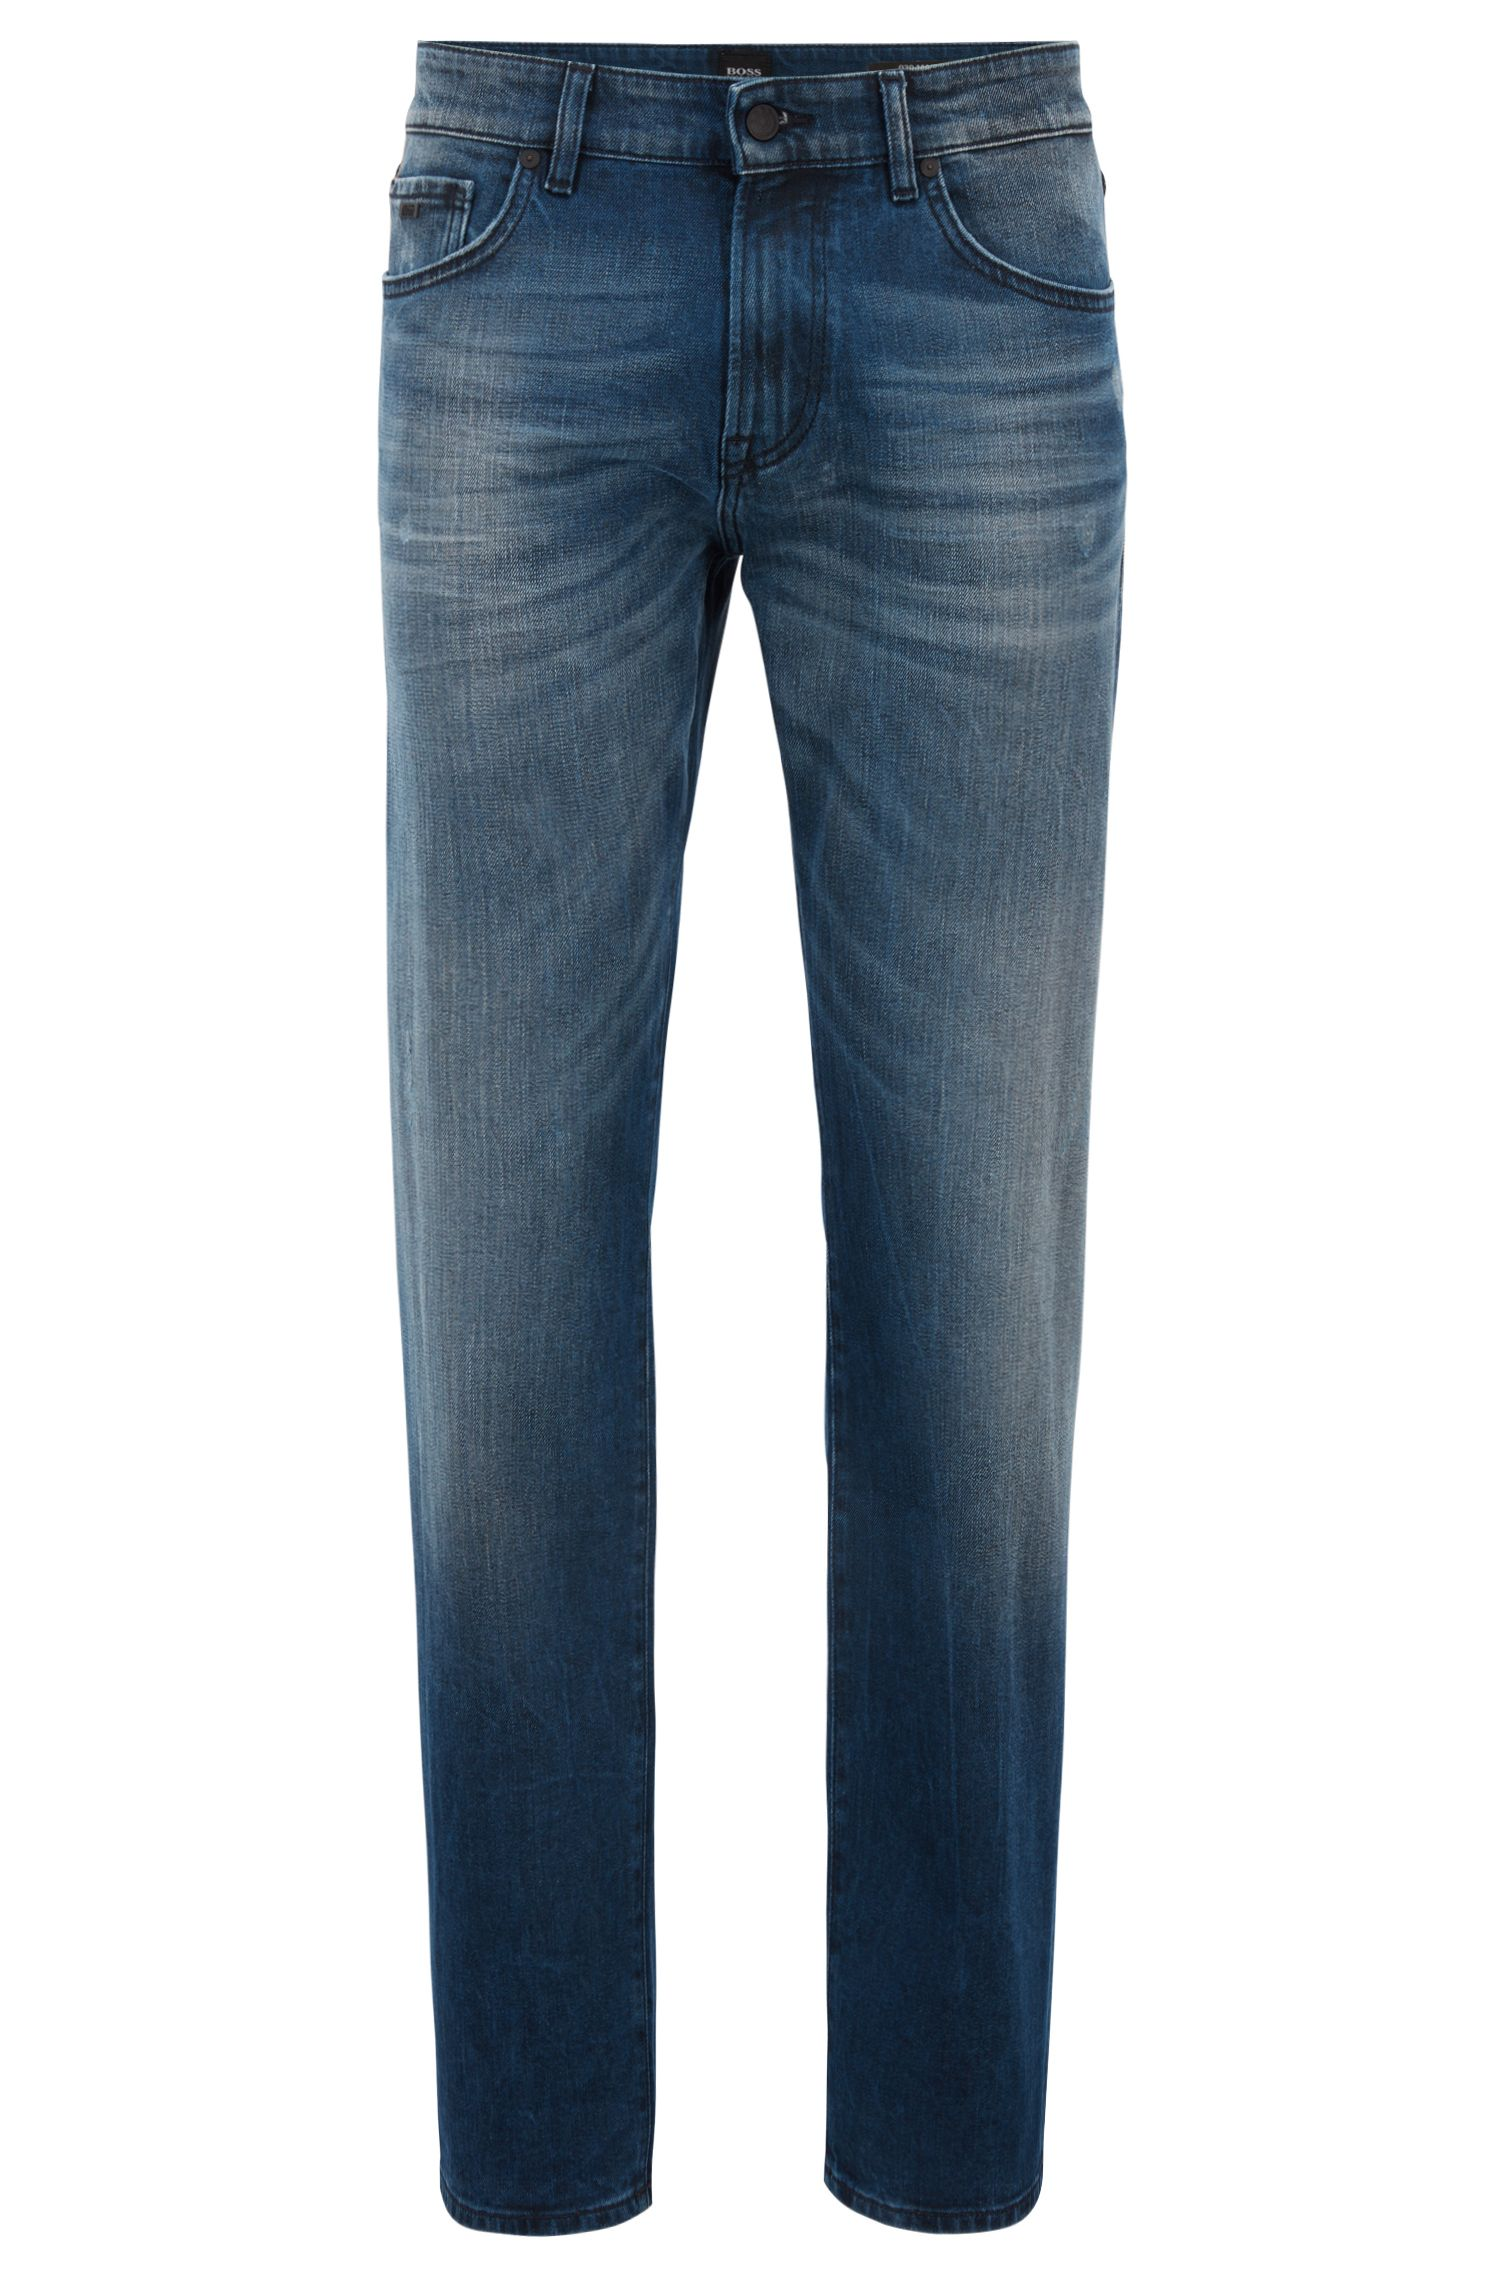 Regular-Fit Jeans aus beschichtetem Stretch-Denim, Blau